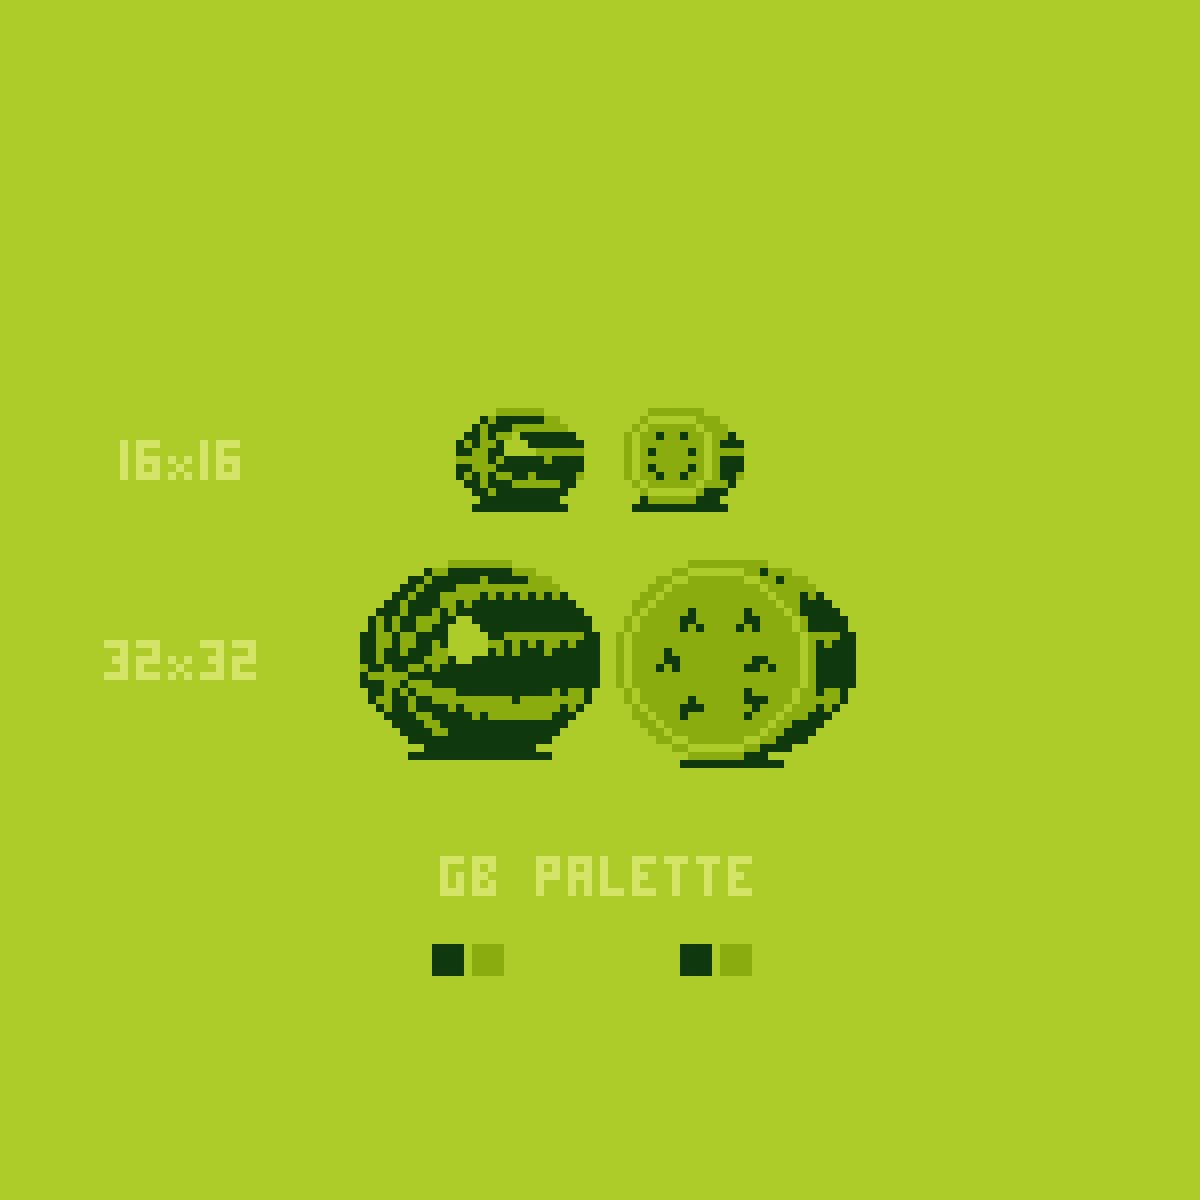 Gameboy color palettes -  Watermelon Pixelart Color Palette And Resolution Tests Nes Gb Gameboy Gameboycolor Pico8pic Twitter Com Izoymclopc